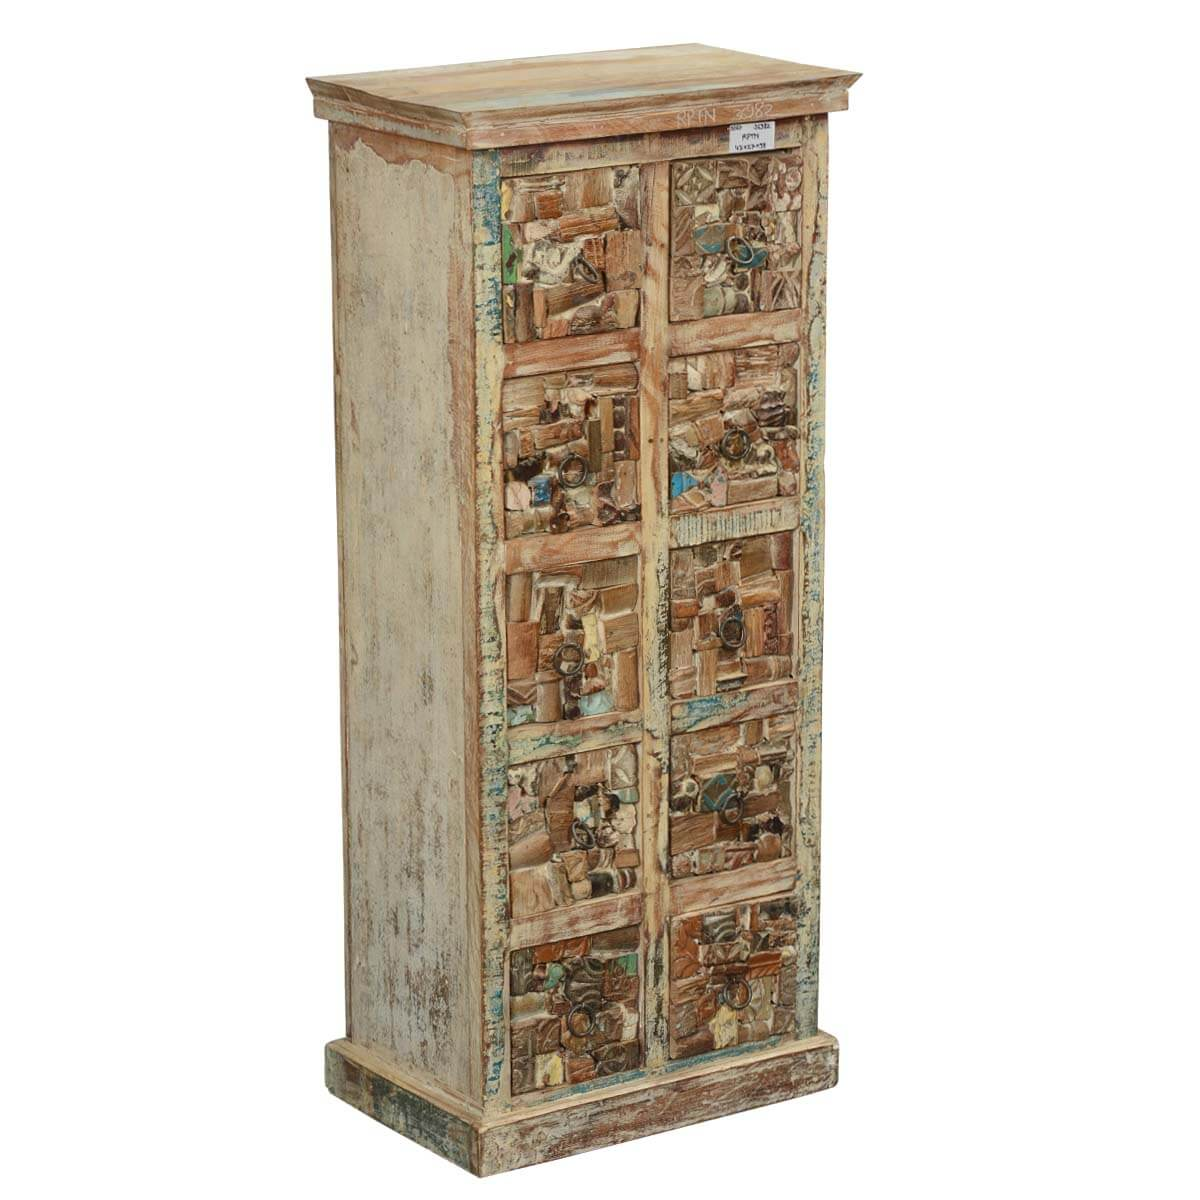 Marvelous photograph of  Artisan Collection Mosaic Reclaimed Wood Pillbox Drawer Chest Tower with #B27F19 color and 1200x1200 pixels